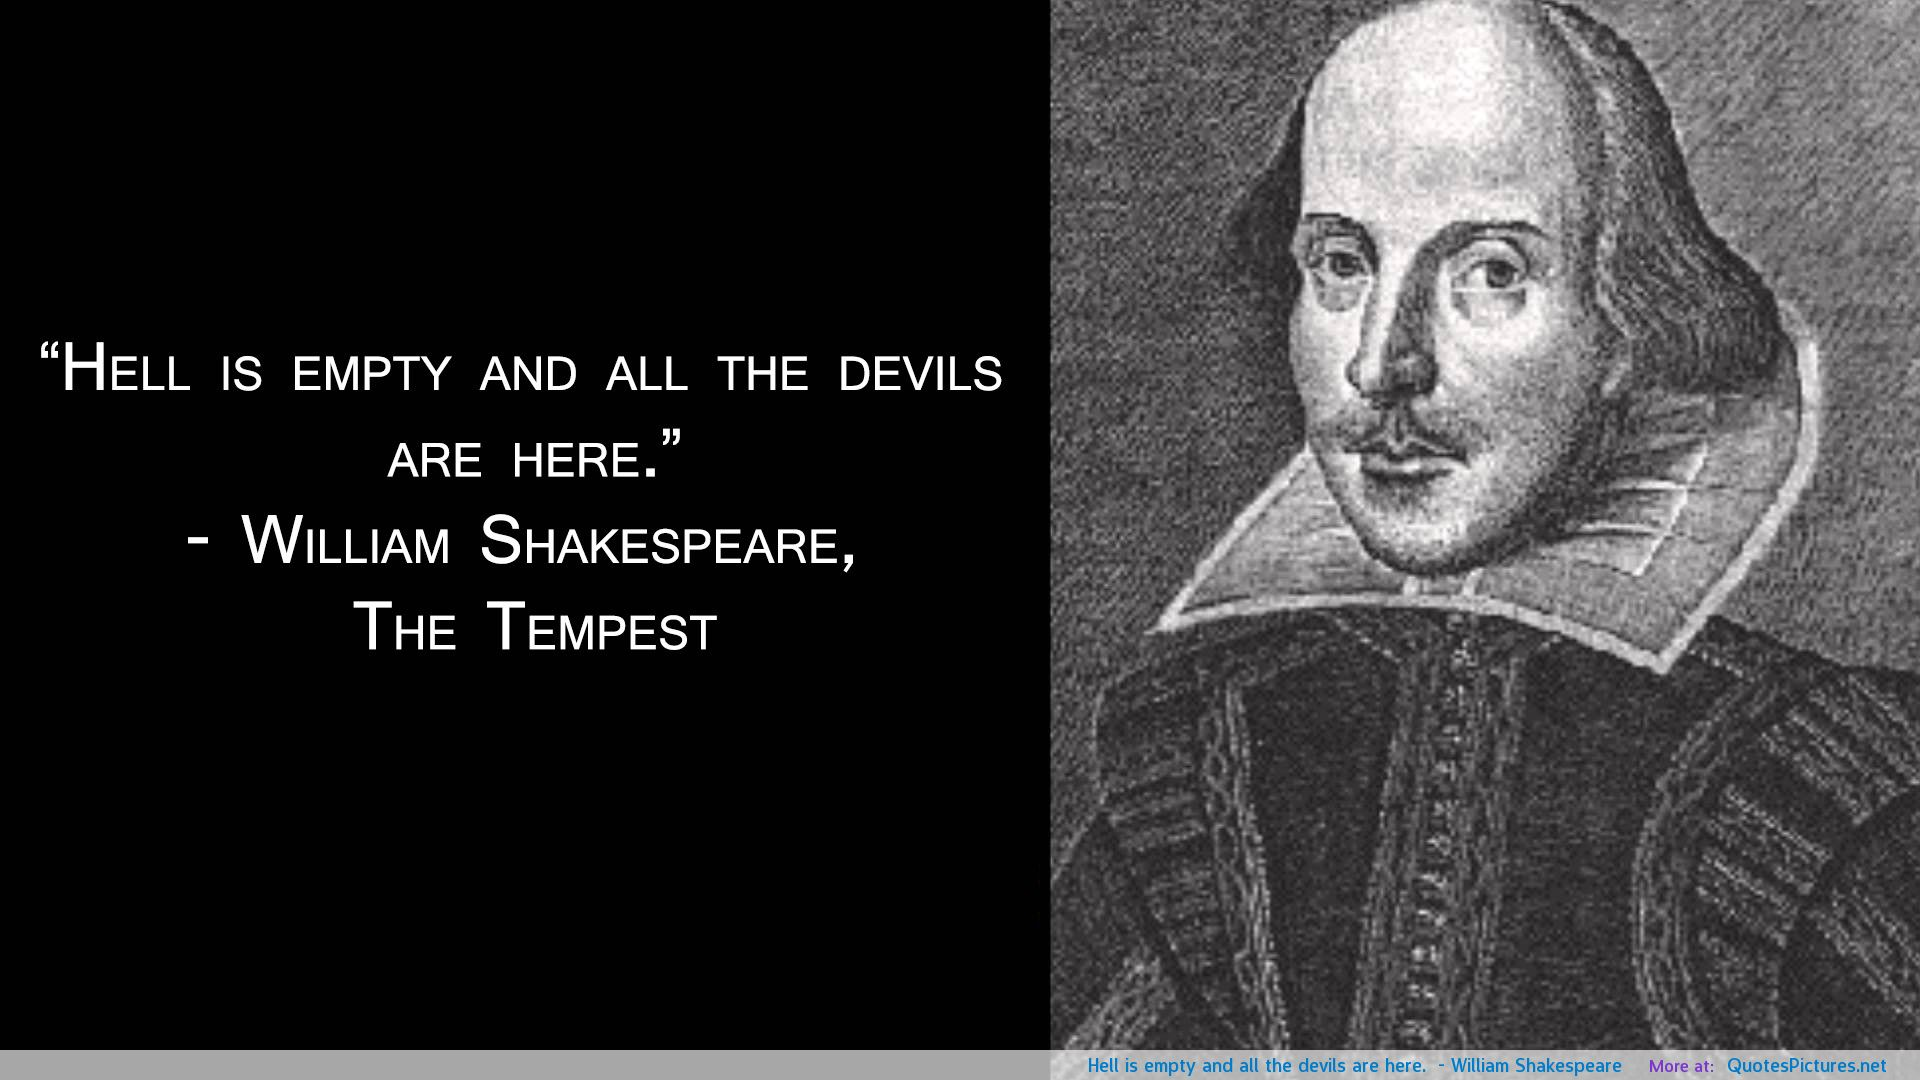 William Shakespeare wallpaper 1920x1080 65509 1920x1080